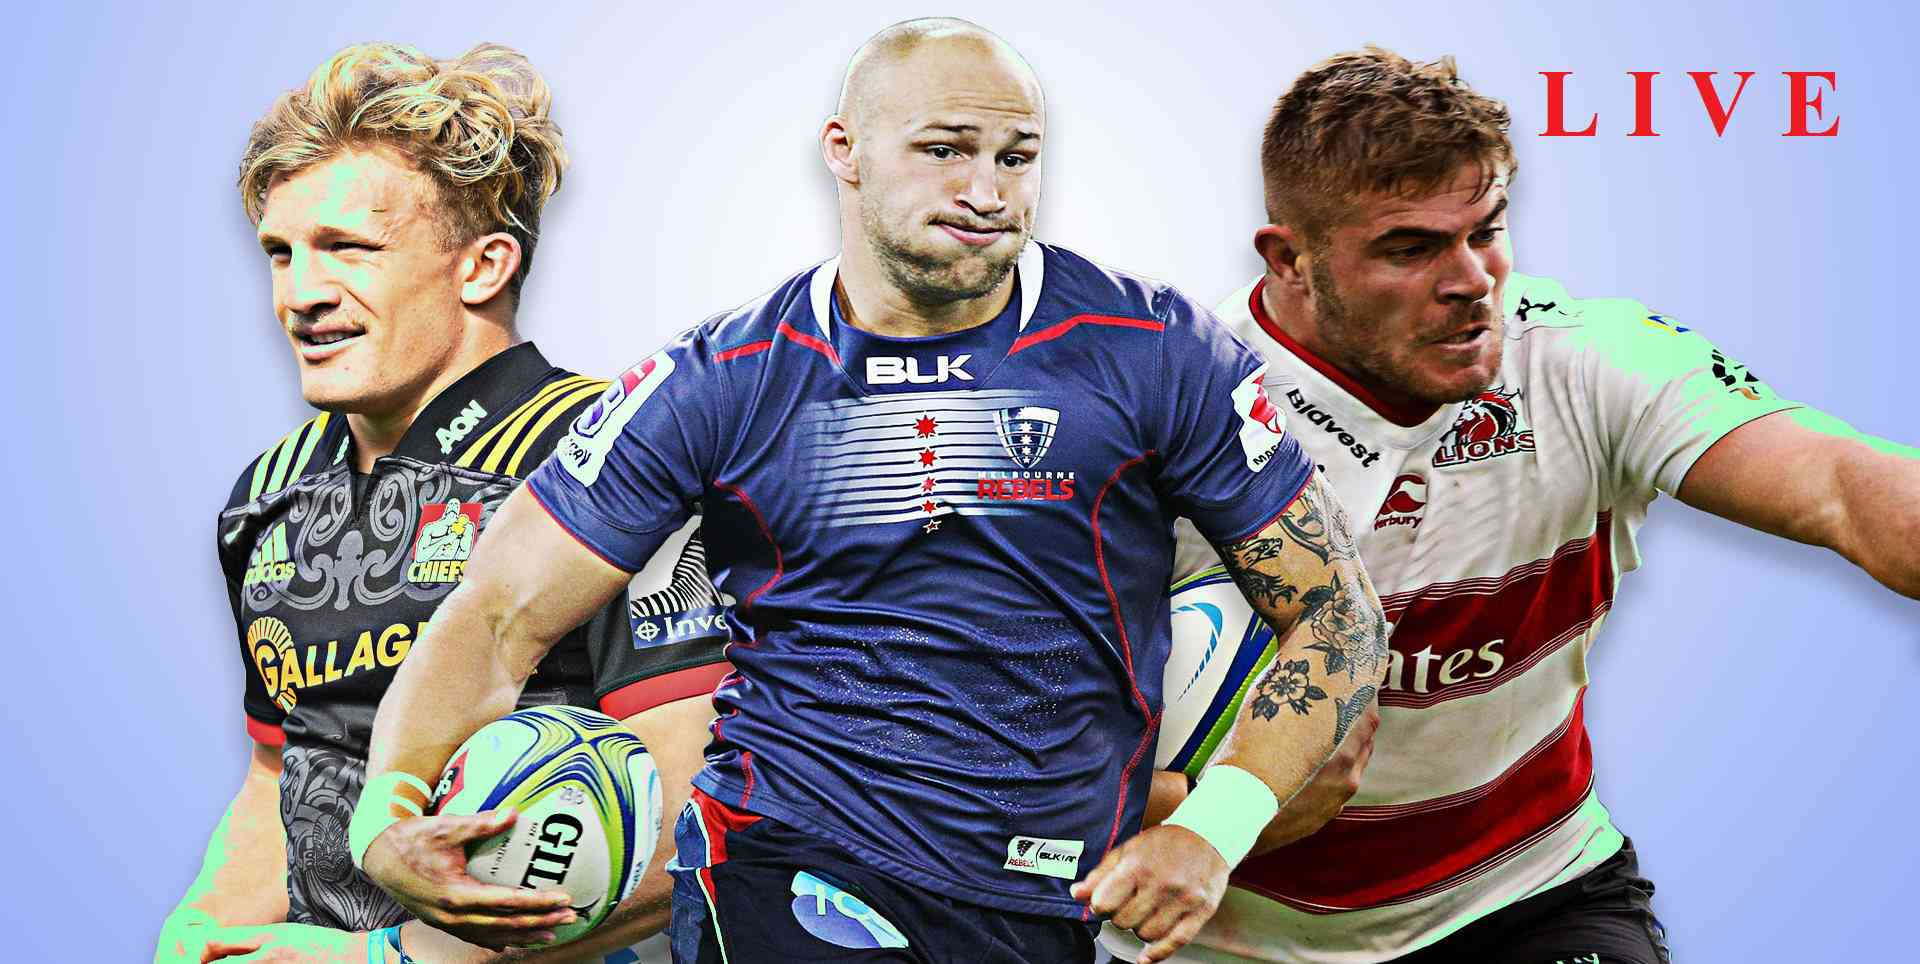 toulouse-vs-stade-francais-rugby-live-on-tv